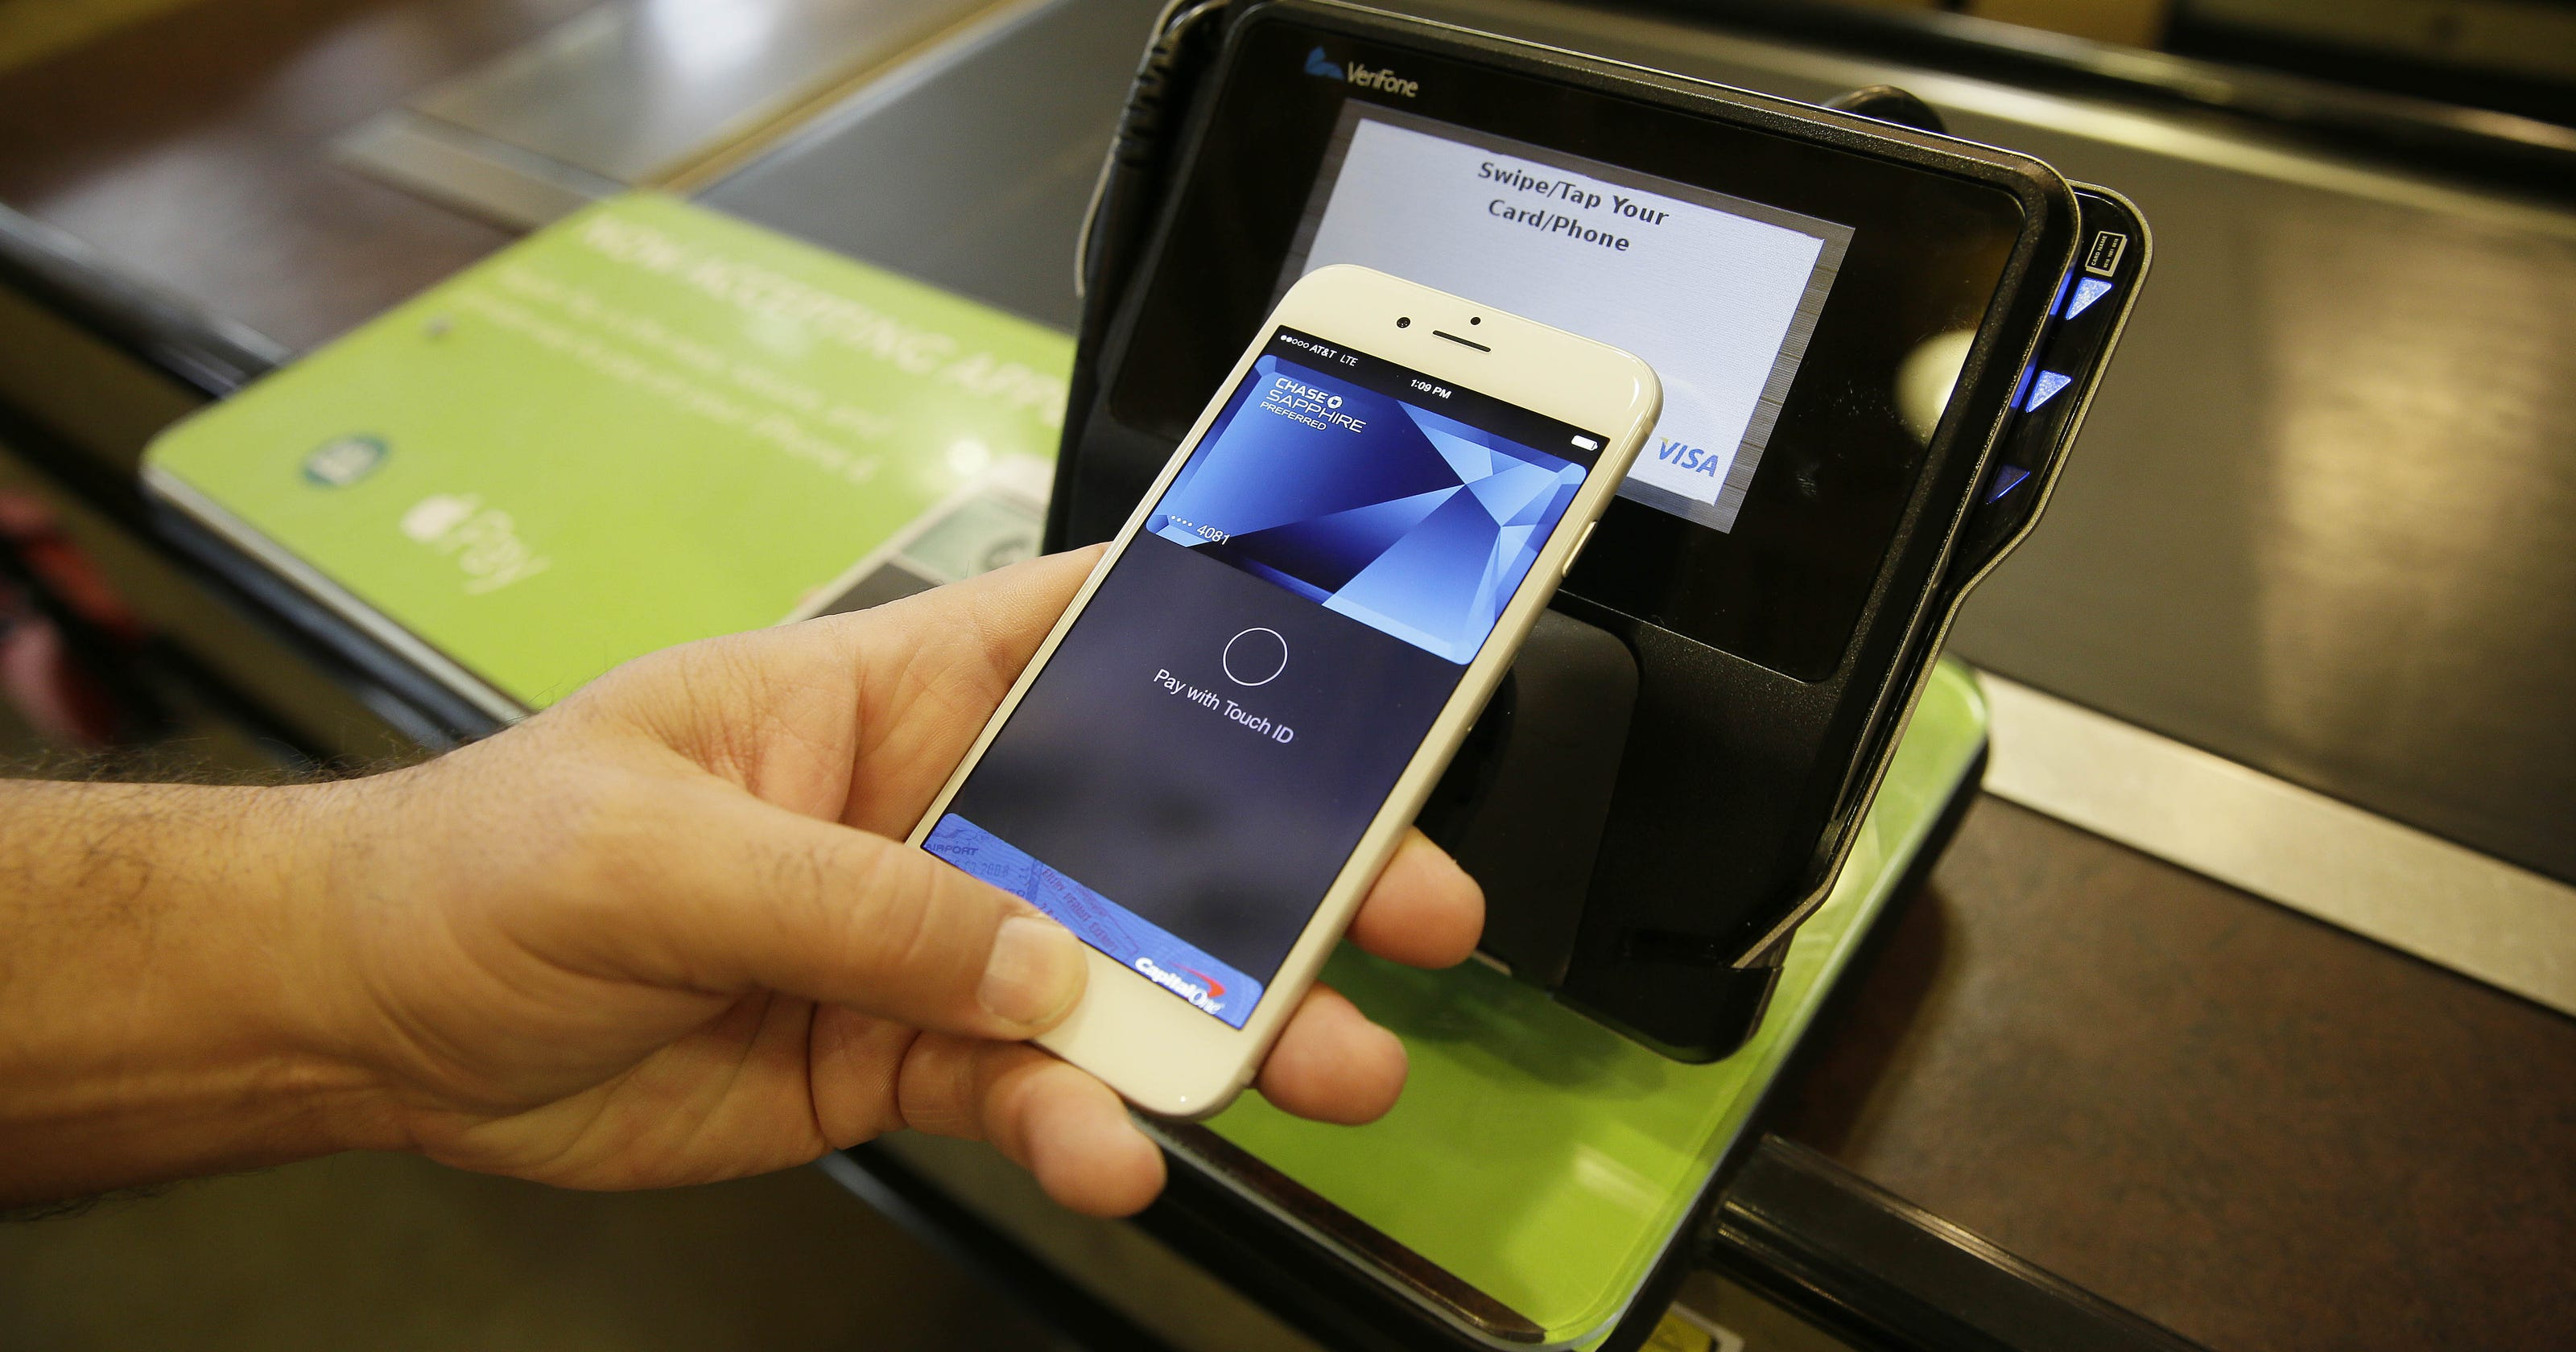 Are your credit cards actually safe with smartphone-based payment systems? Find out